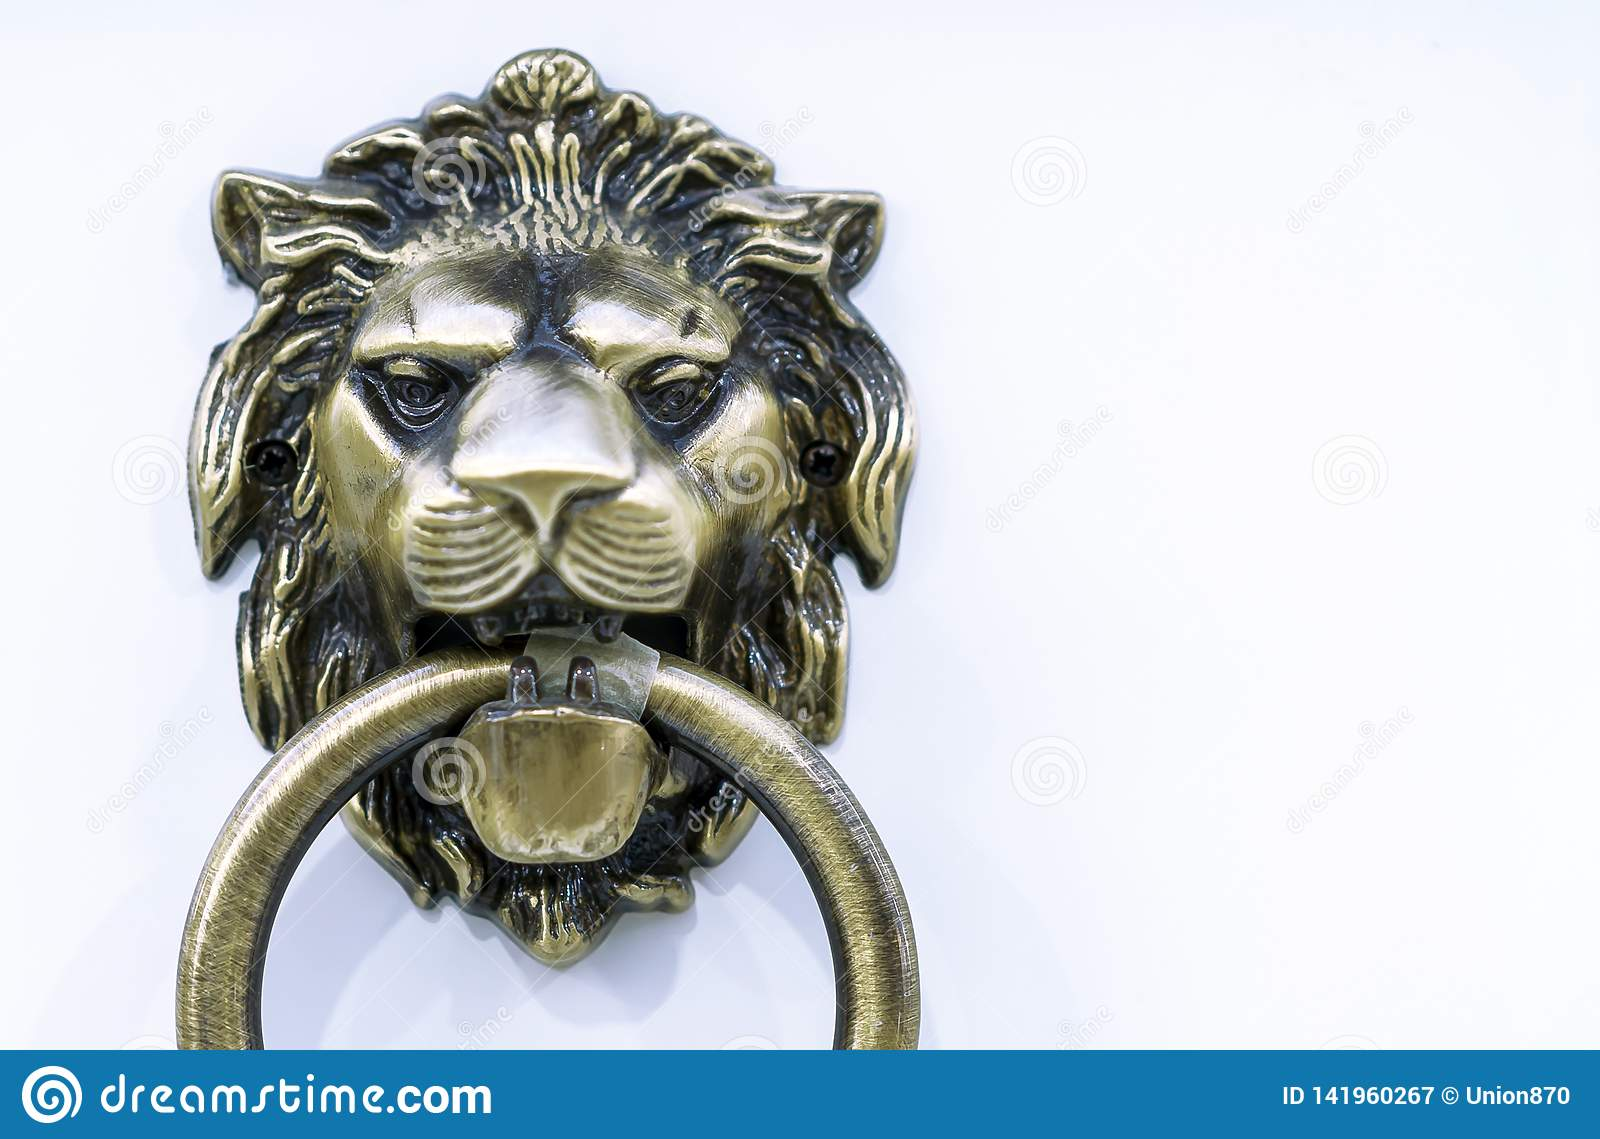 Door handle with a ring in the form of a lion`s head